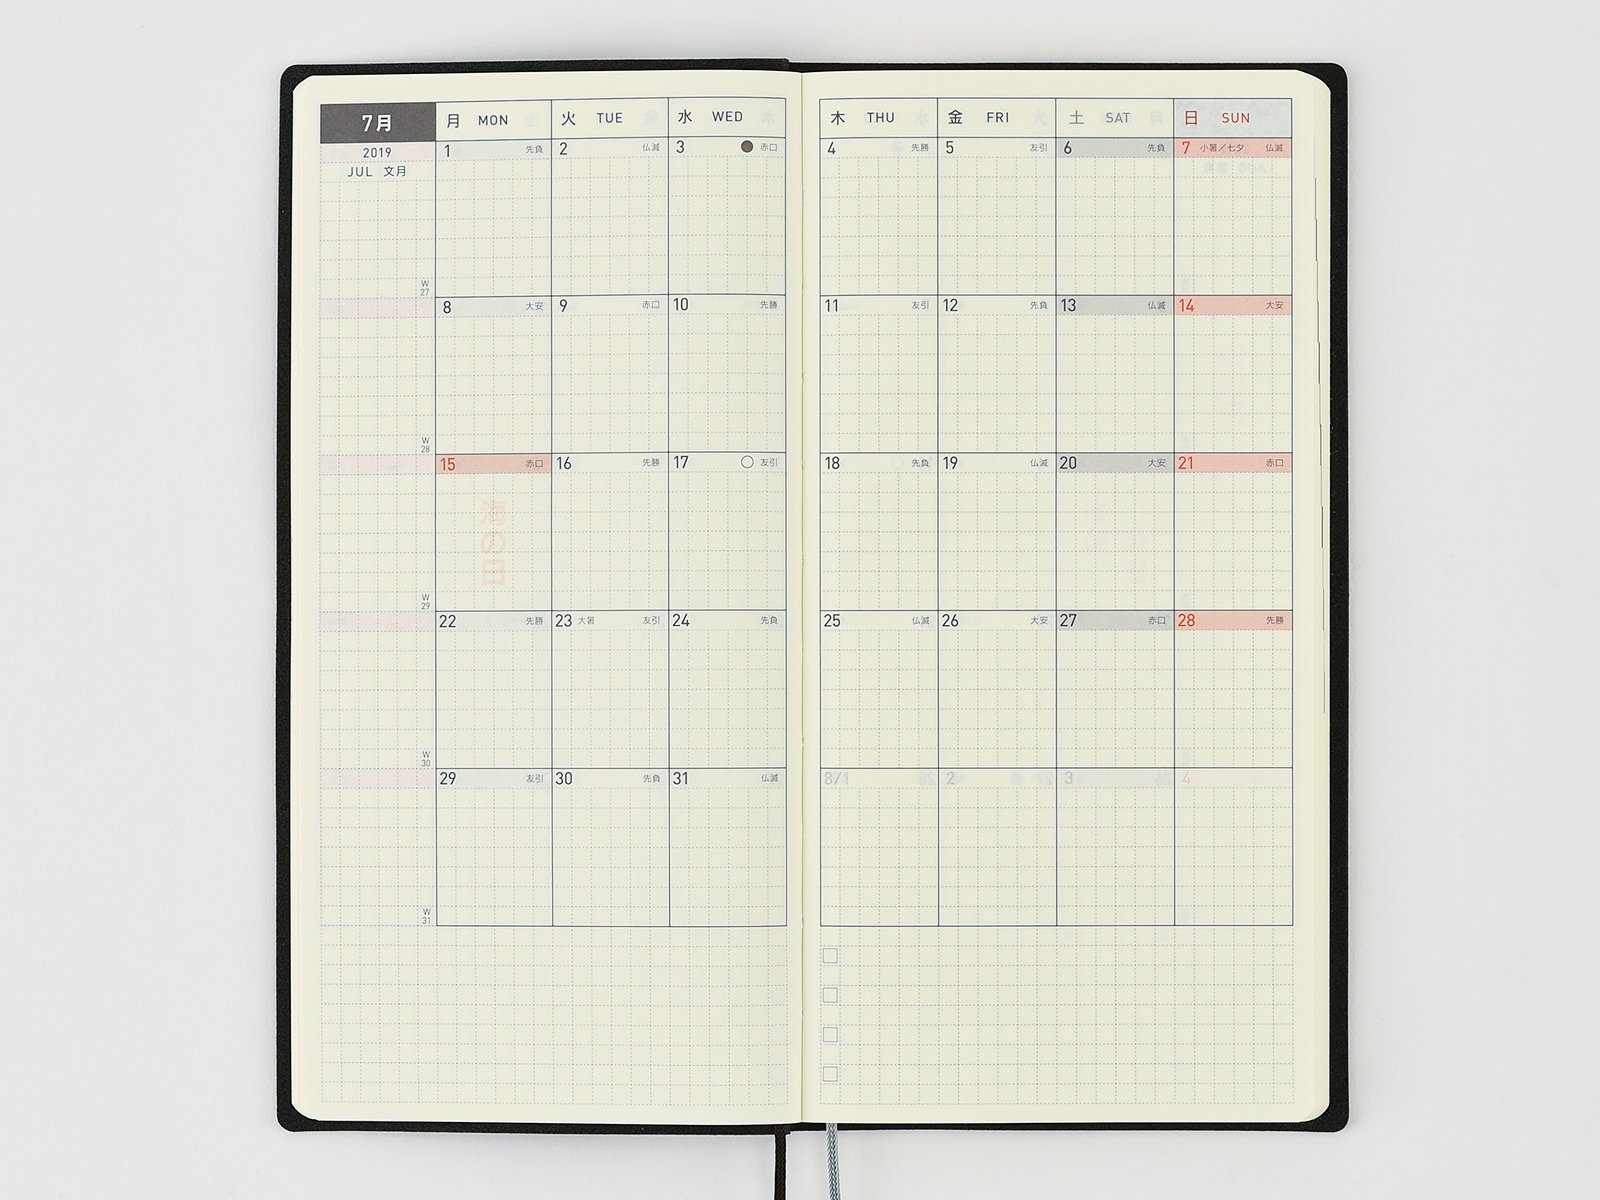 Monthly Calendar - Hobonichi Techo Weeks - Book Buying Guide Calendar 2019 Book